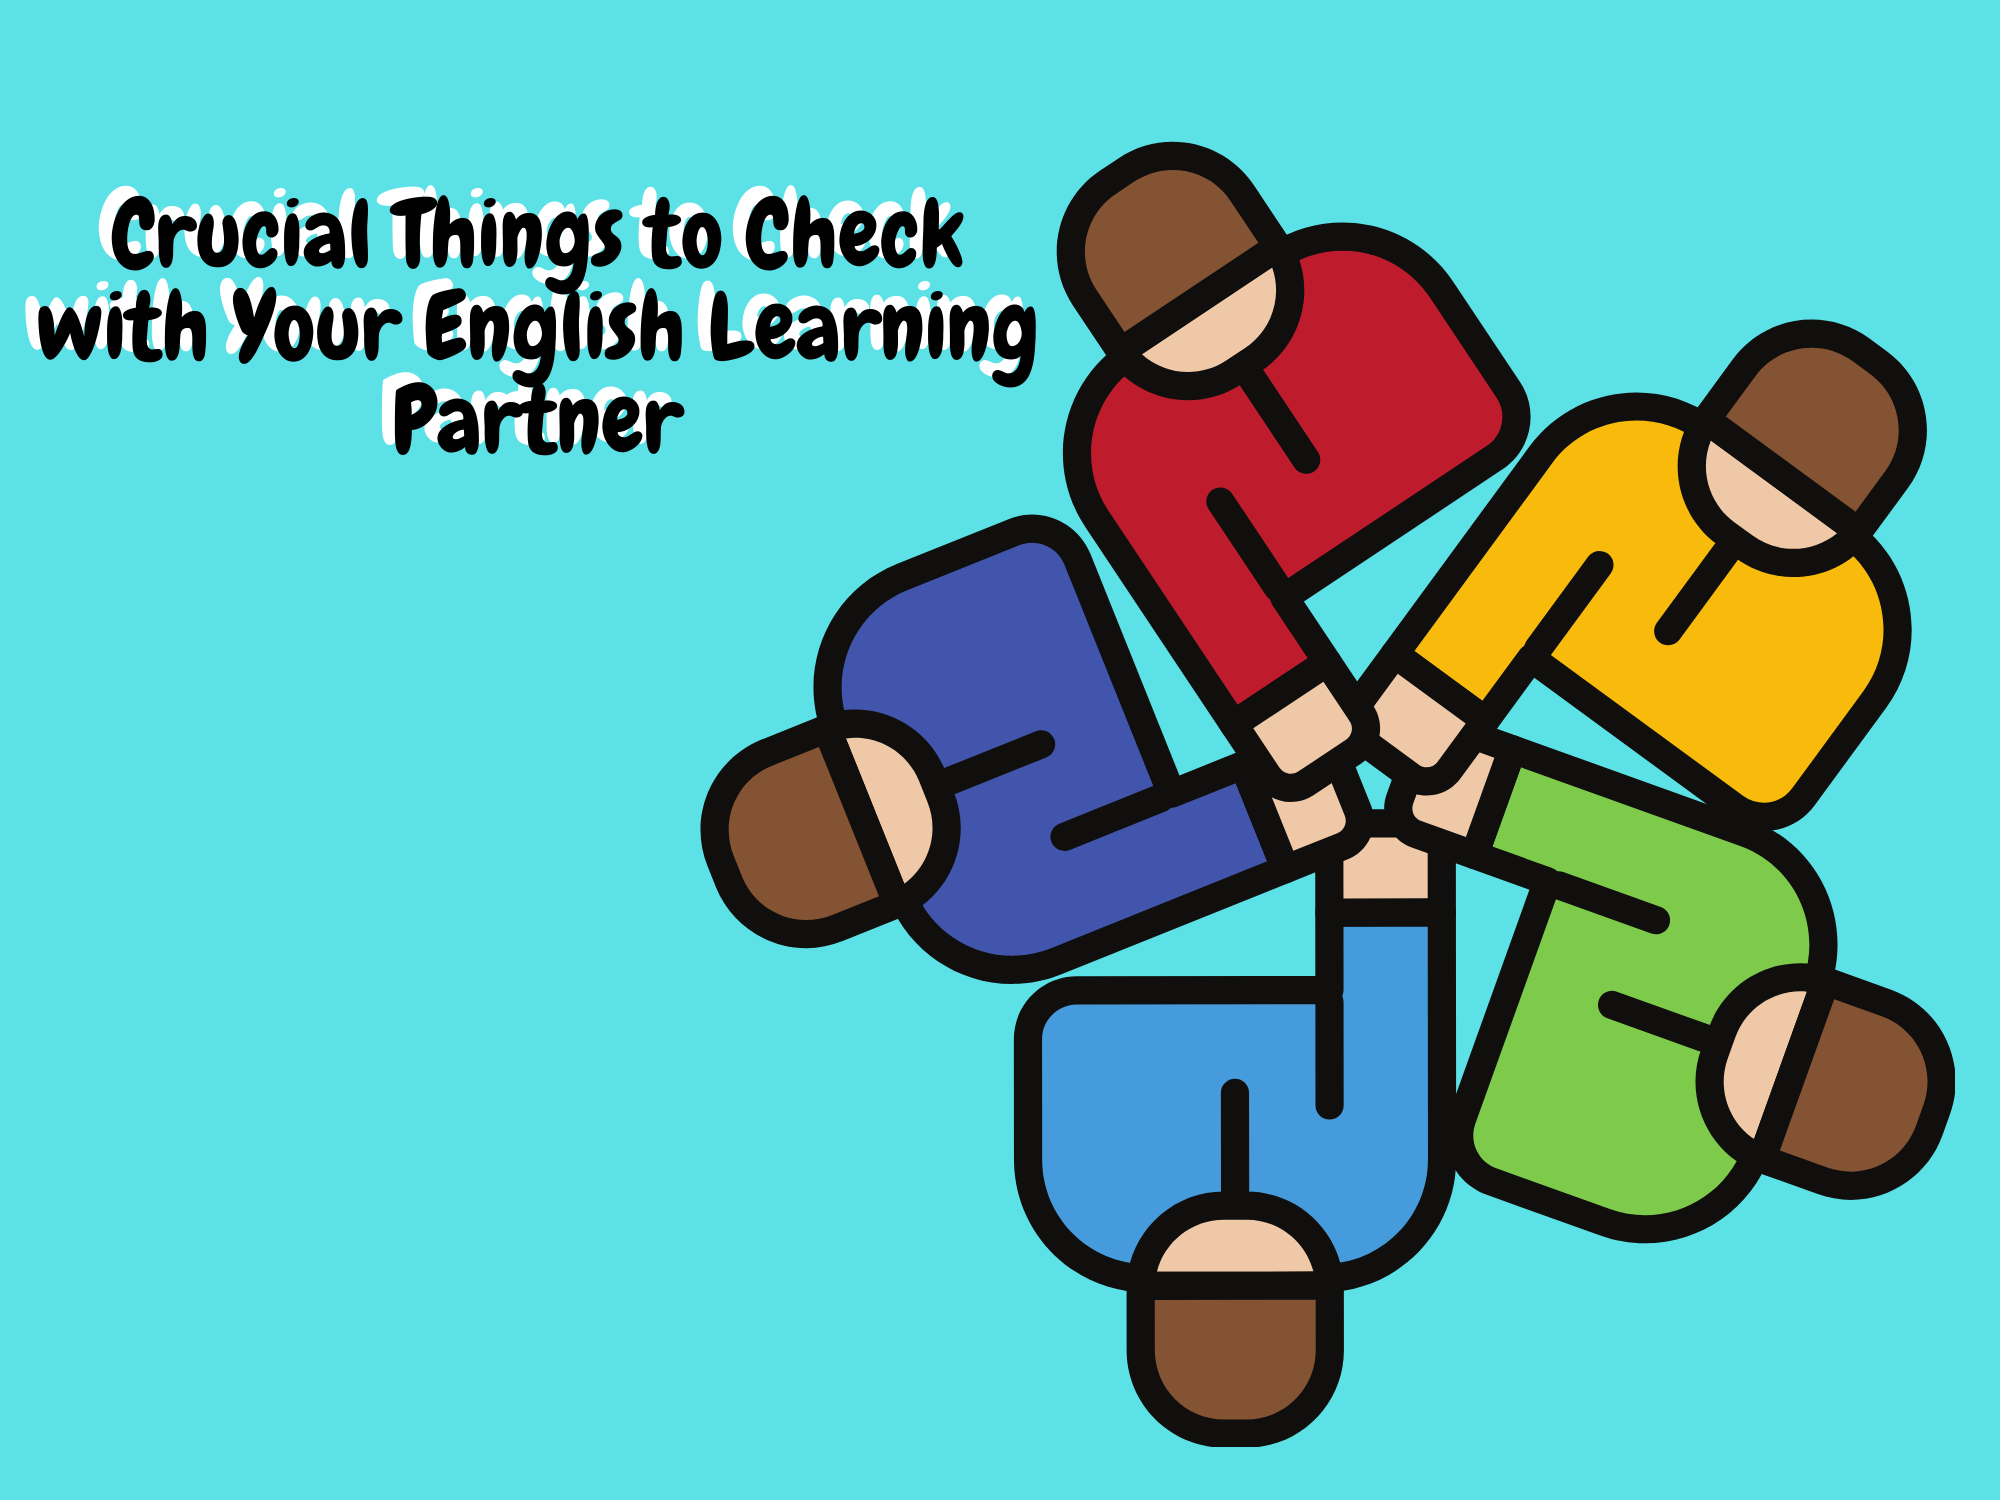 Crucial-Things-to-Check-with-Your-English-Learning-Partner